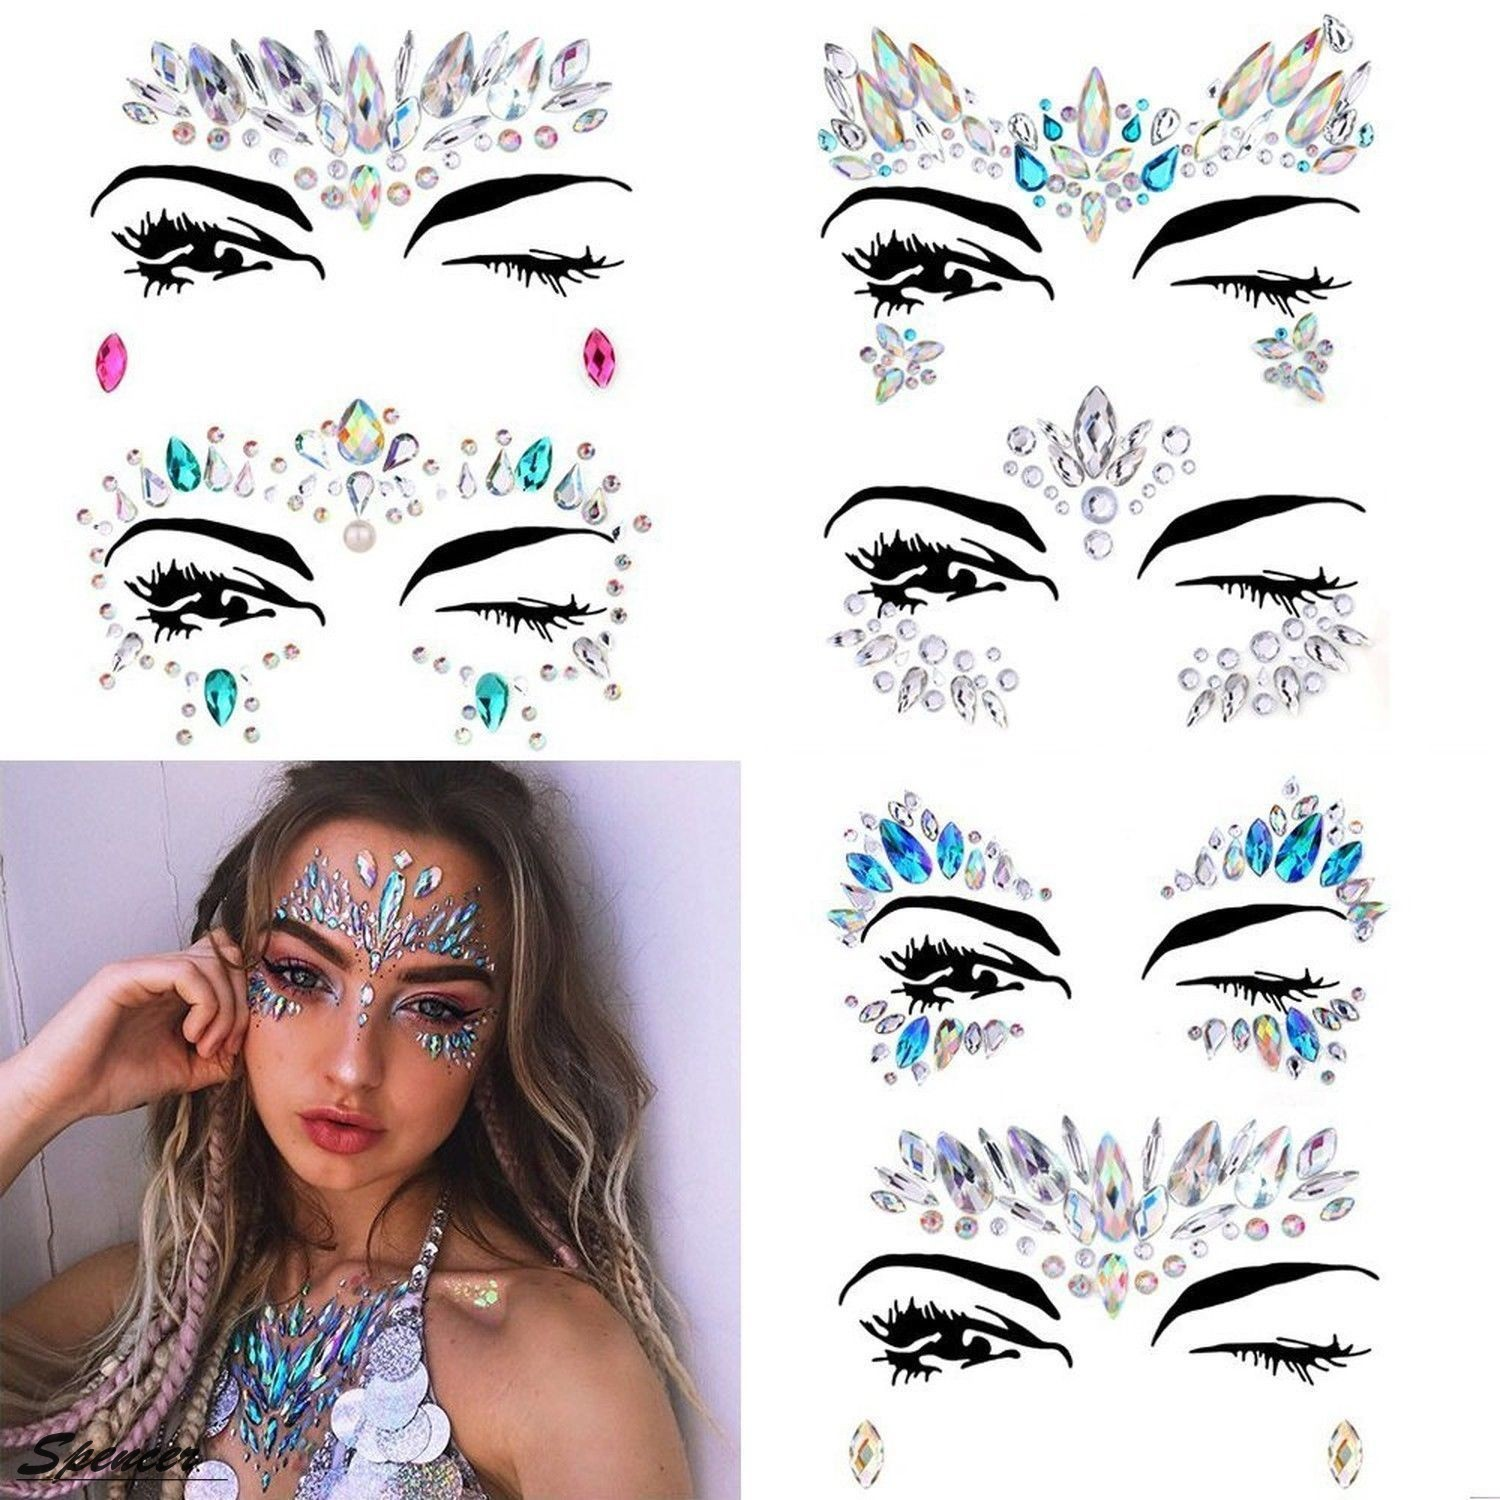 "Spencer 1PC Rhinestone Temporary Face Tattoos Crystal Tears Gem Adhesive Glitter Body Stickers""Type #5"""